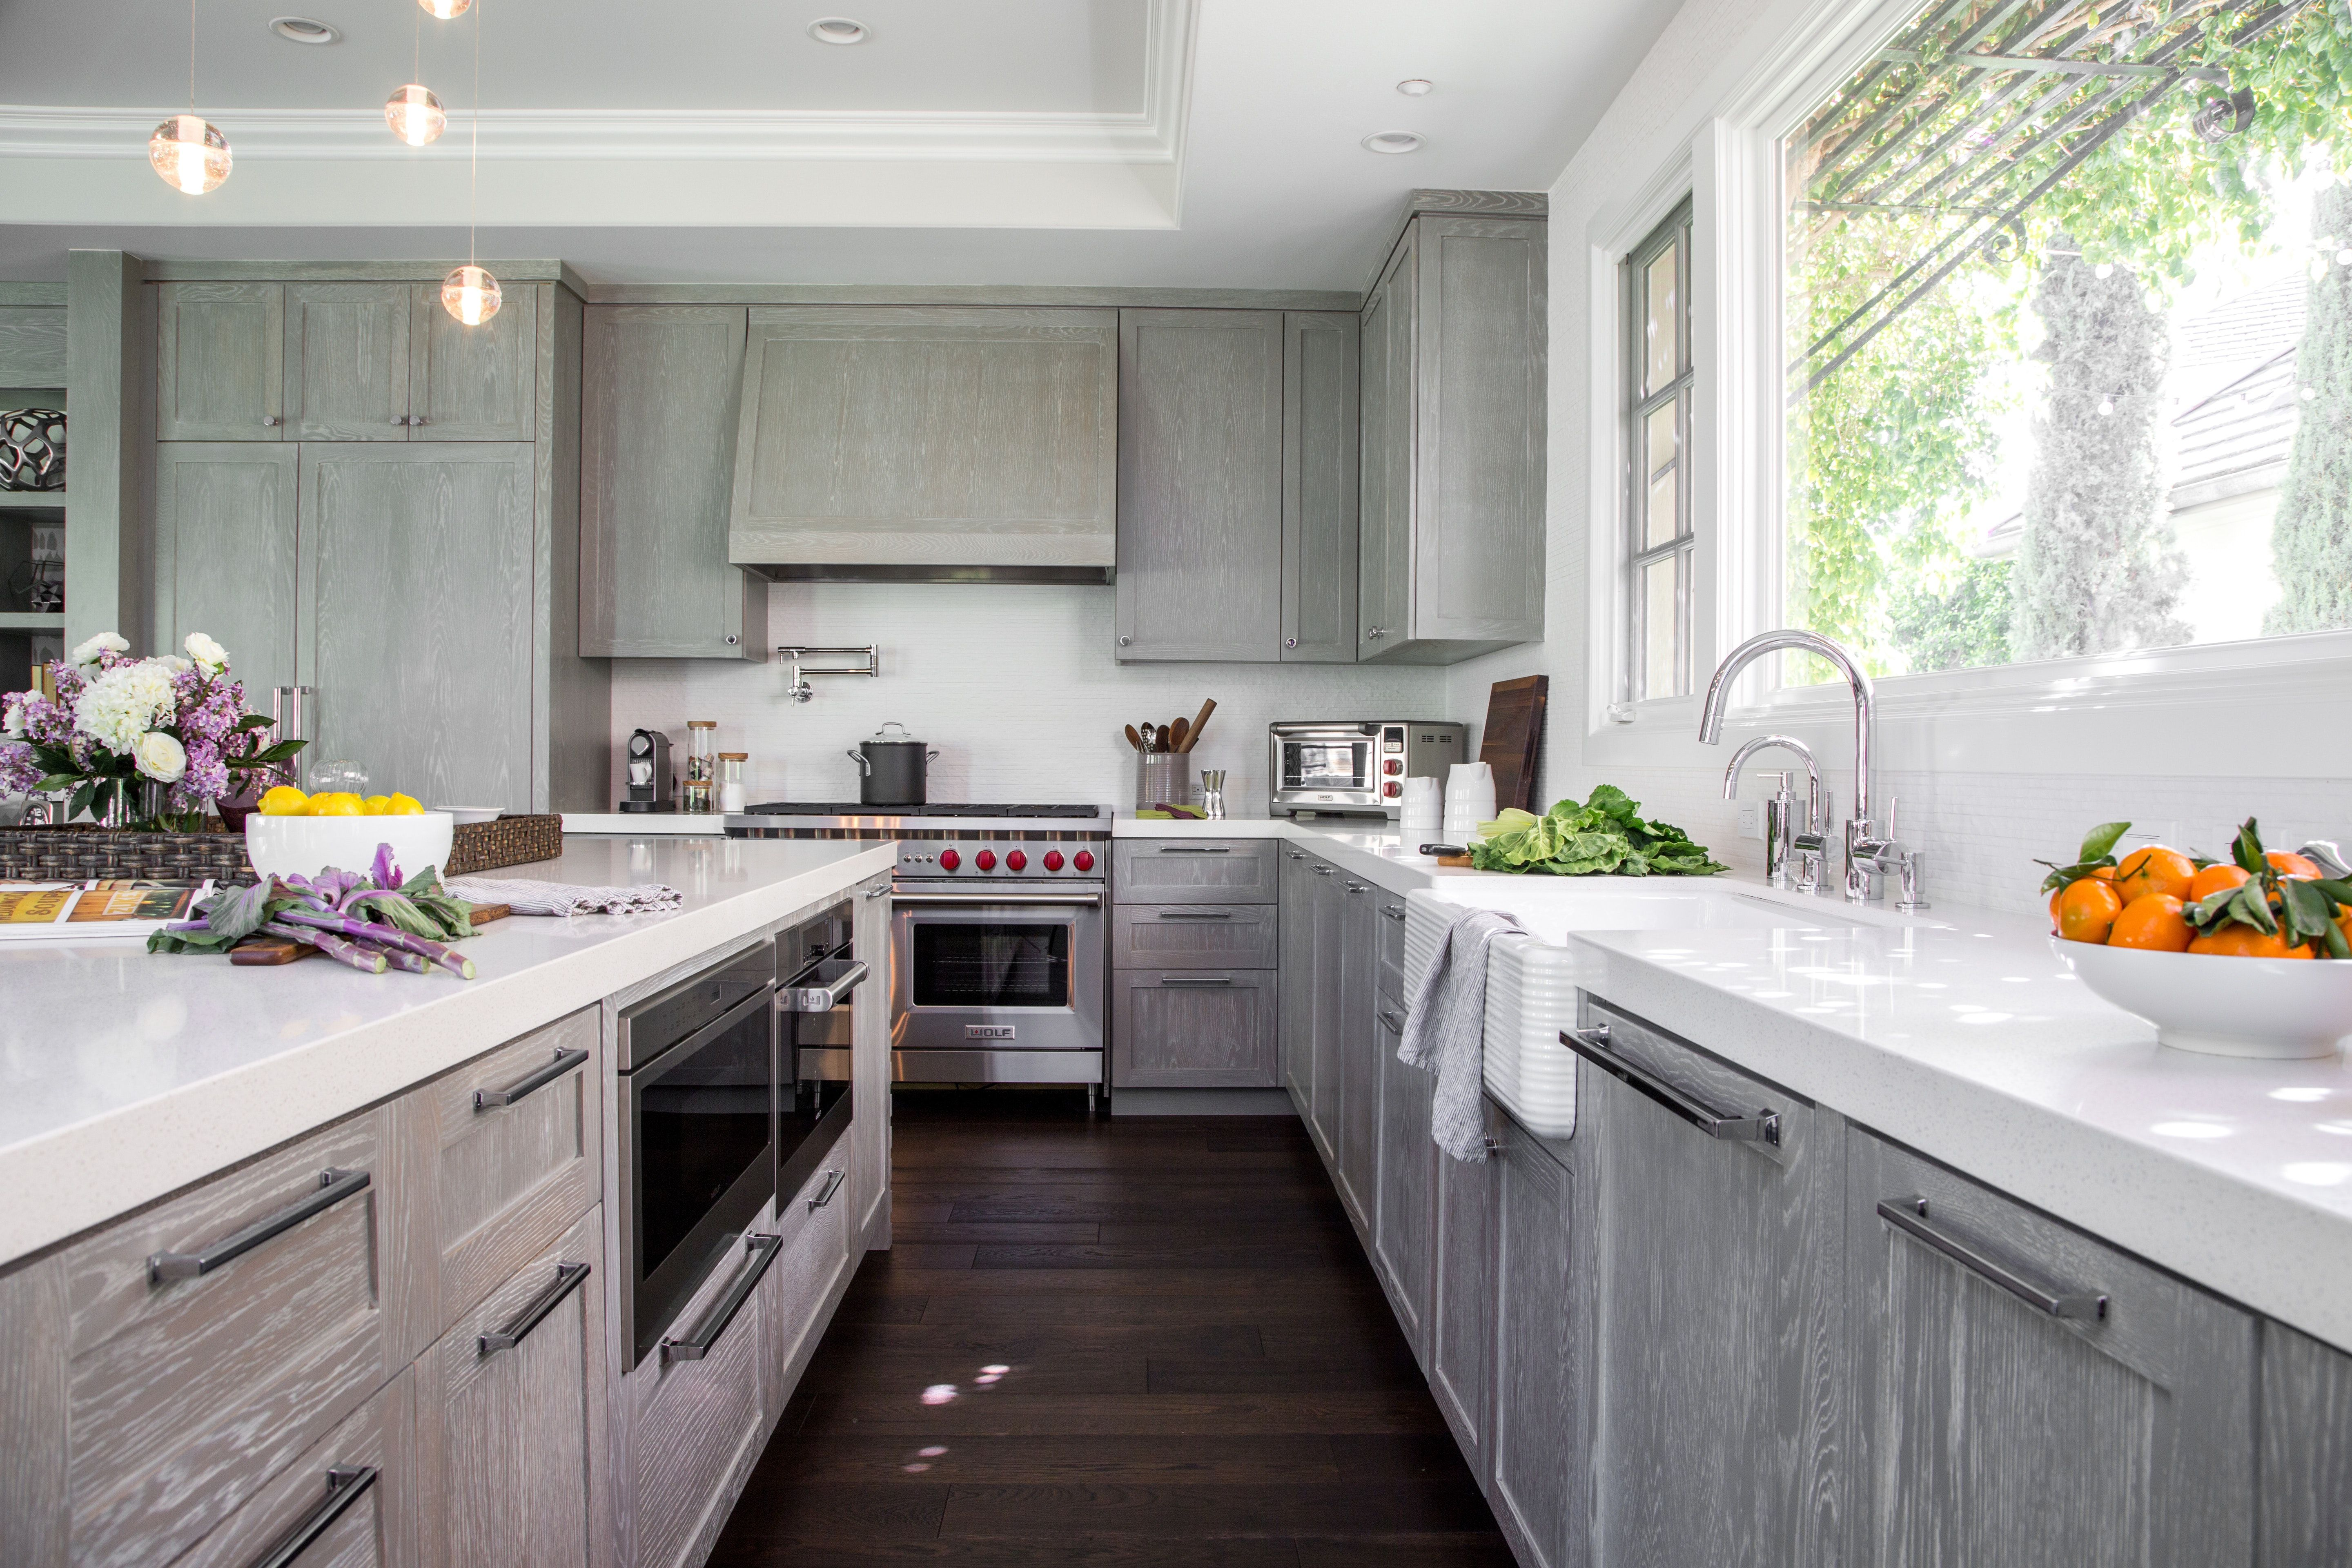 Download Wallpaper White Kitchen Cabinets With Gray Quartz Counters